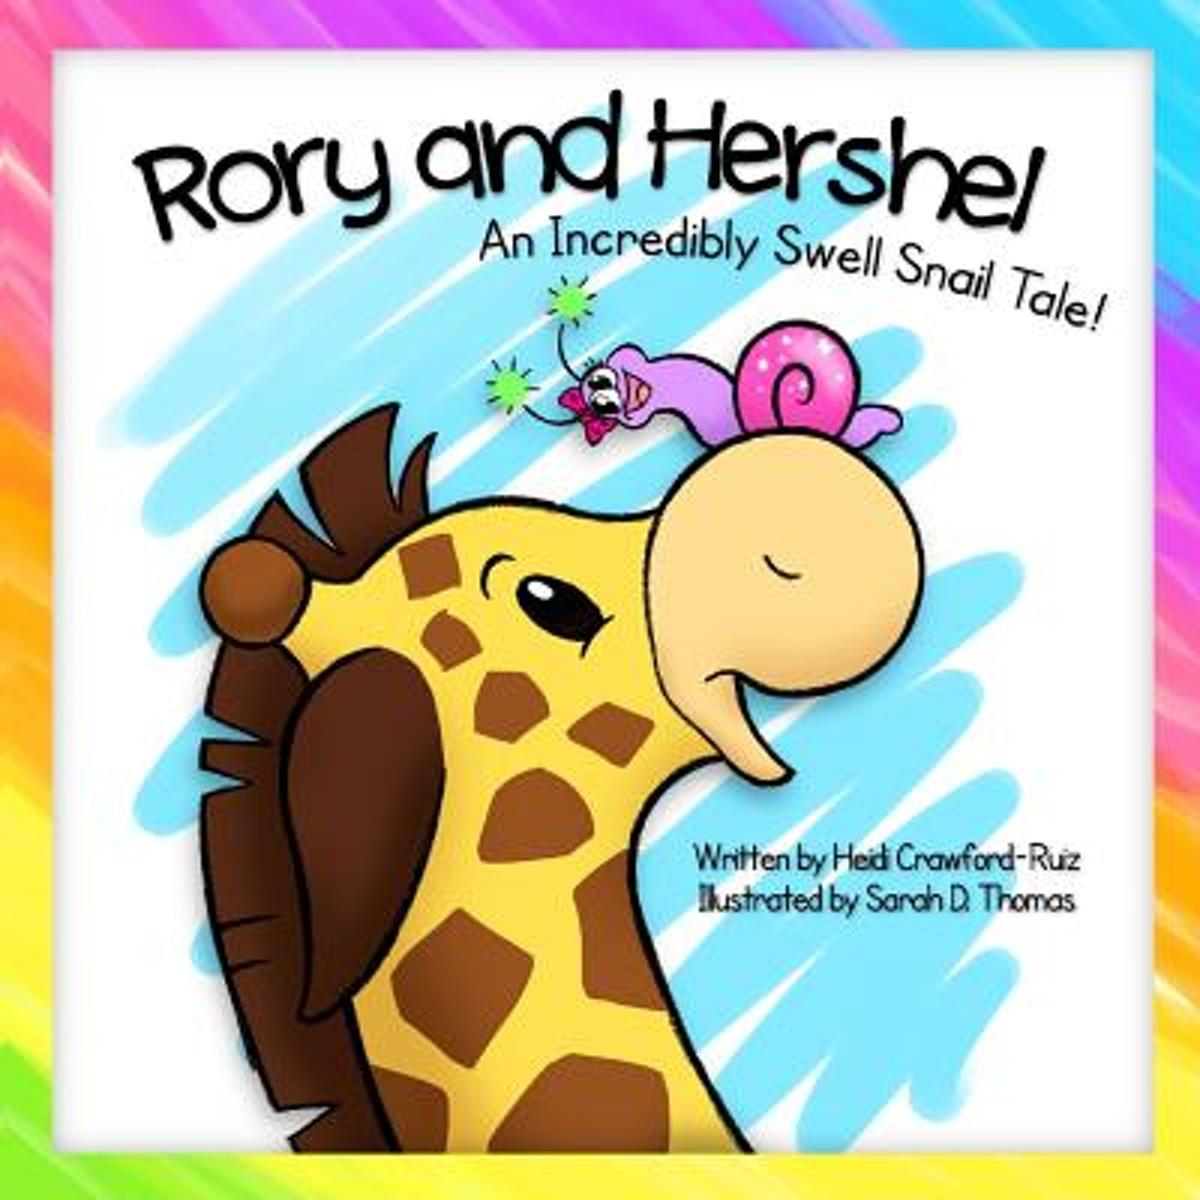 Rory and Hershel - An Incredibly Swell Snail Tale!